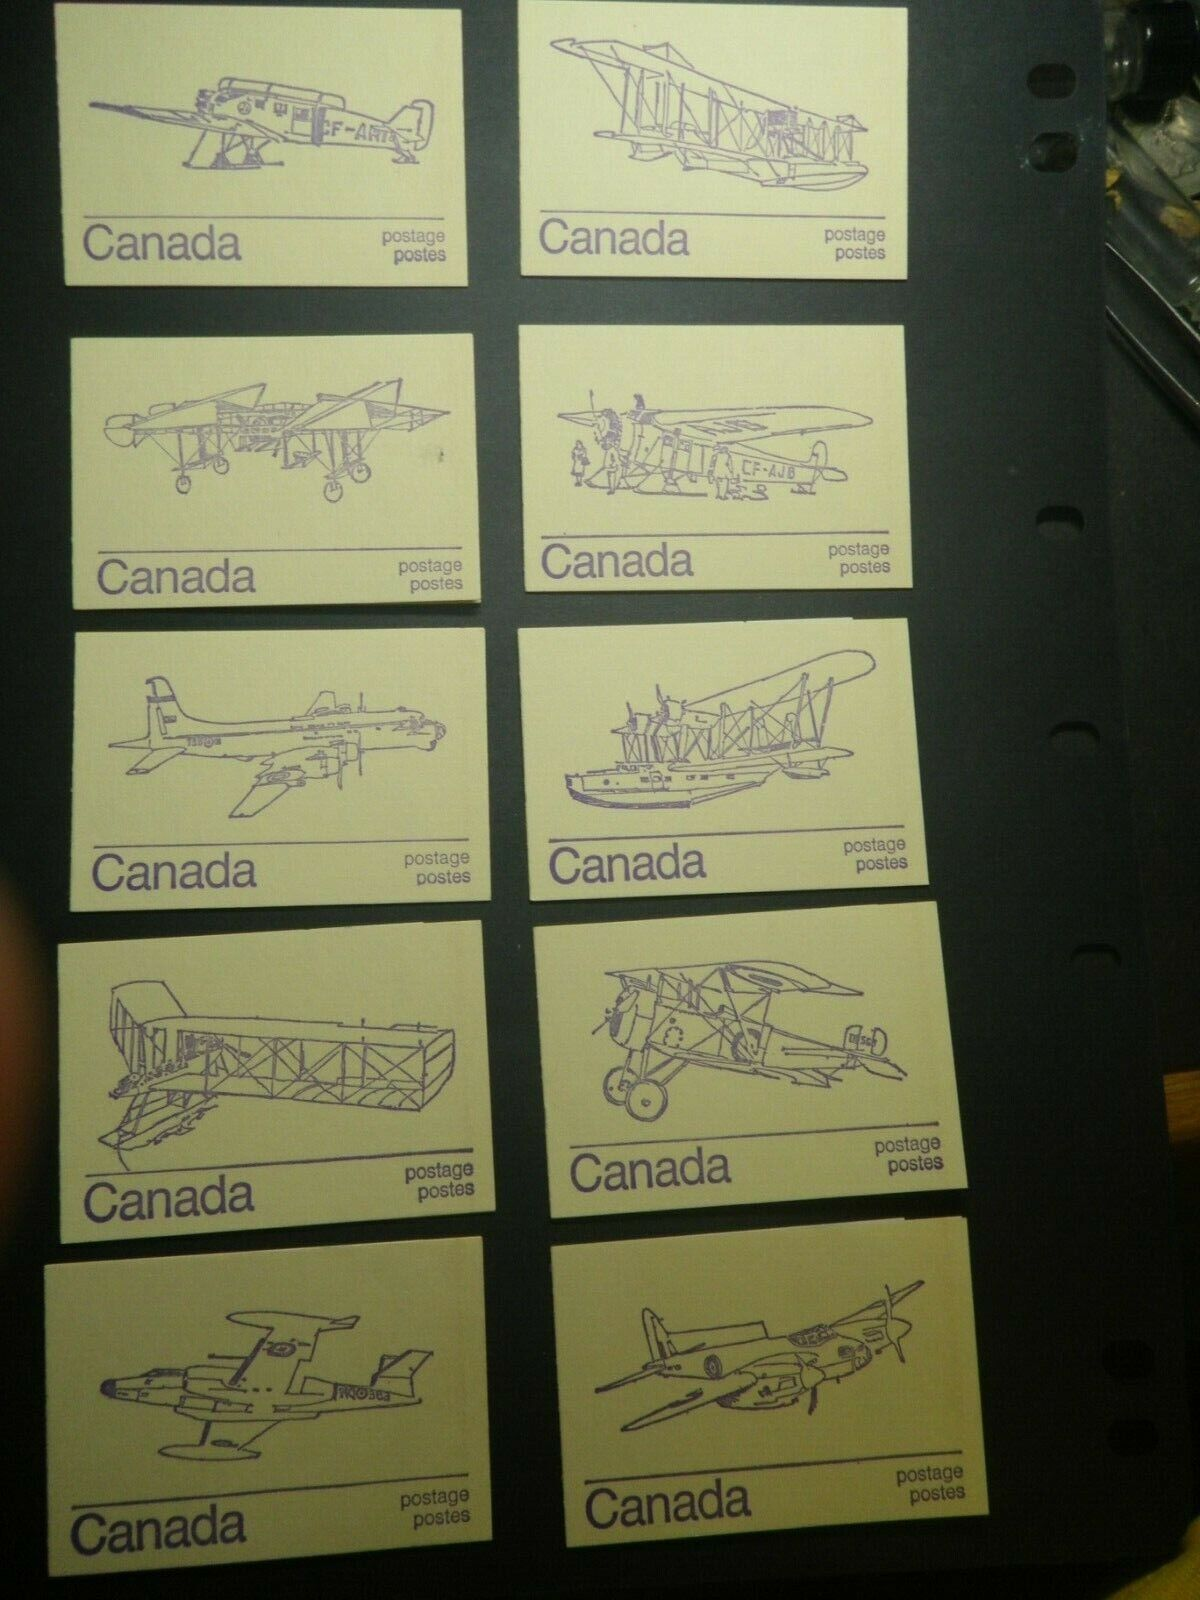 CANADA - 10 MNH 1976 PICTORIAL POSTAGE BOOKS WITH AIRCRAFT ON COVERS